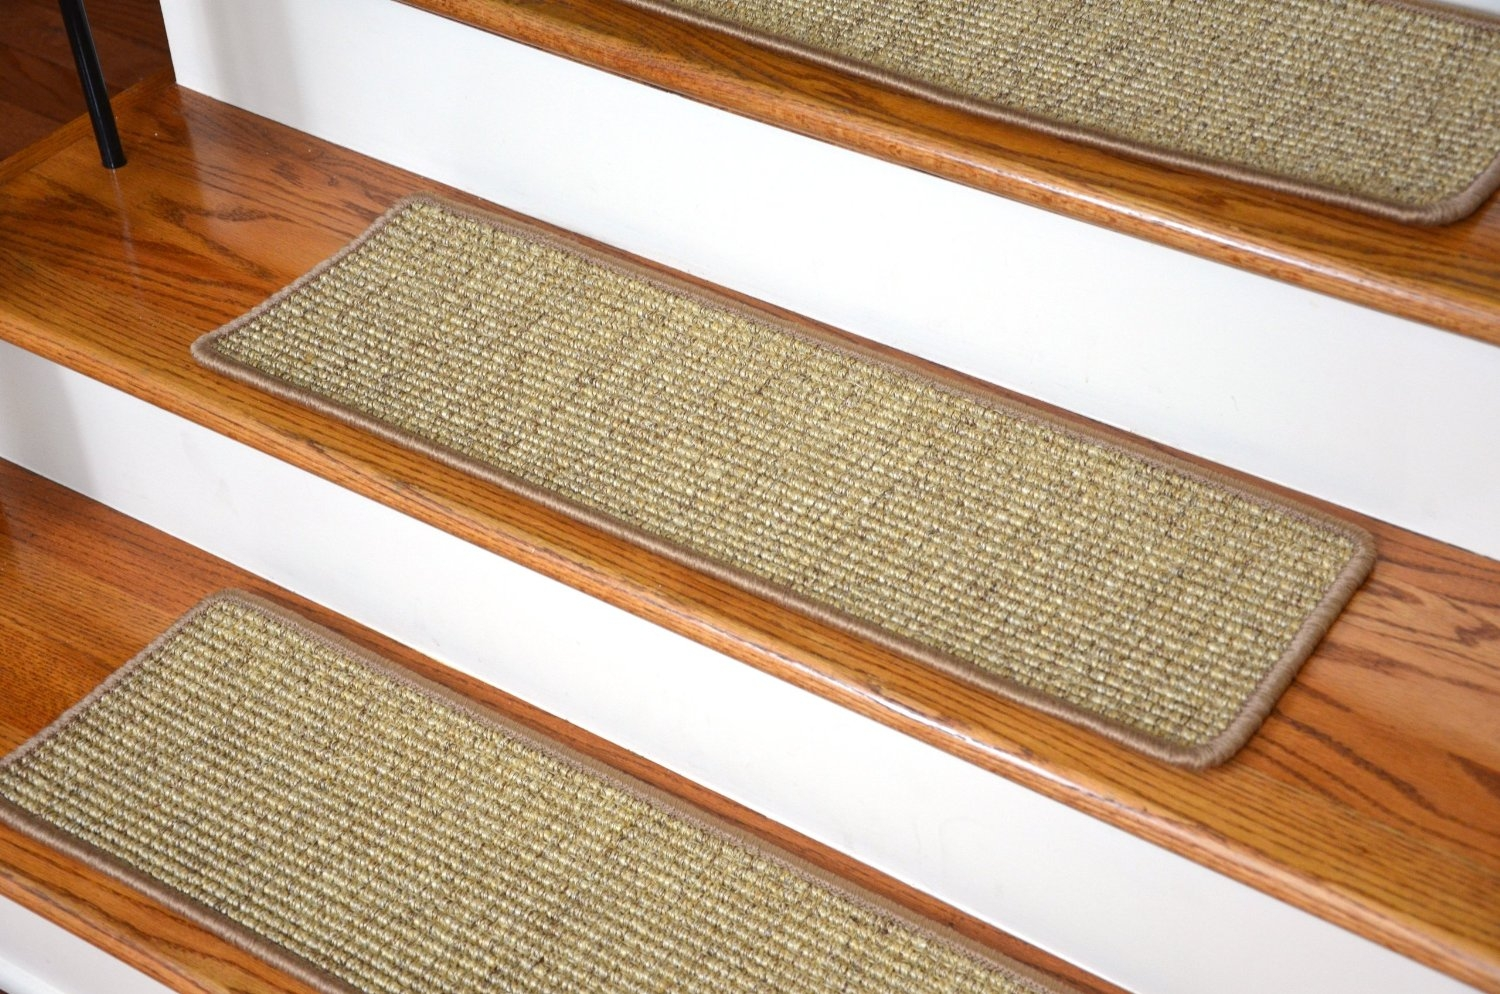 Flooring Pretty Stair Treads Carpet For Stair Decoration Idea Throughout Sisal Stair Tread Rugs (#8 of 20)